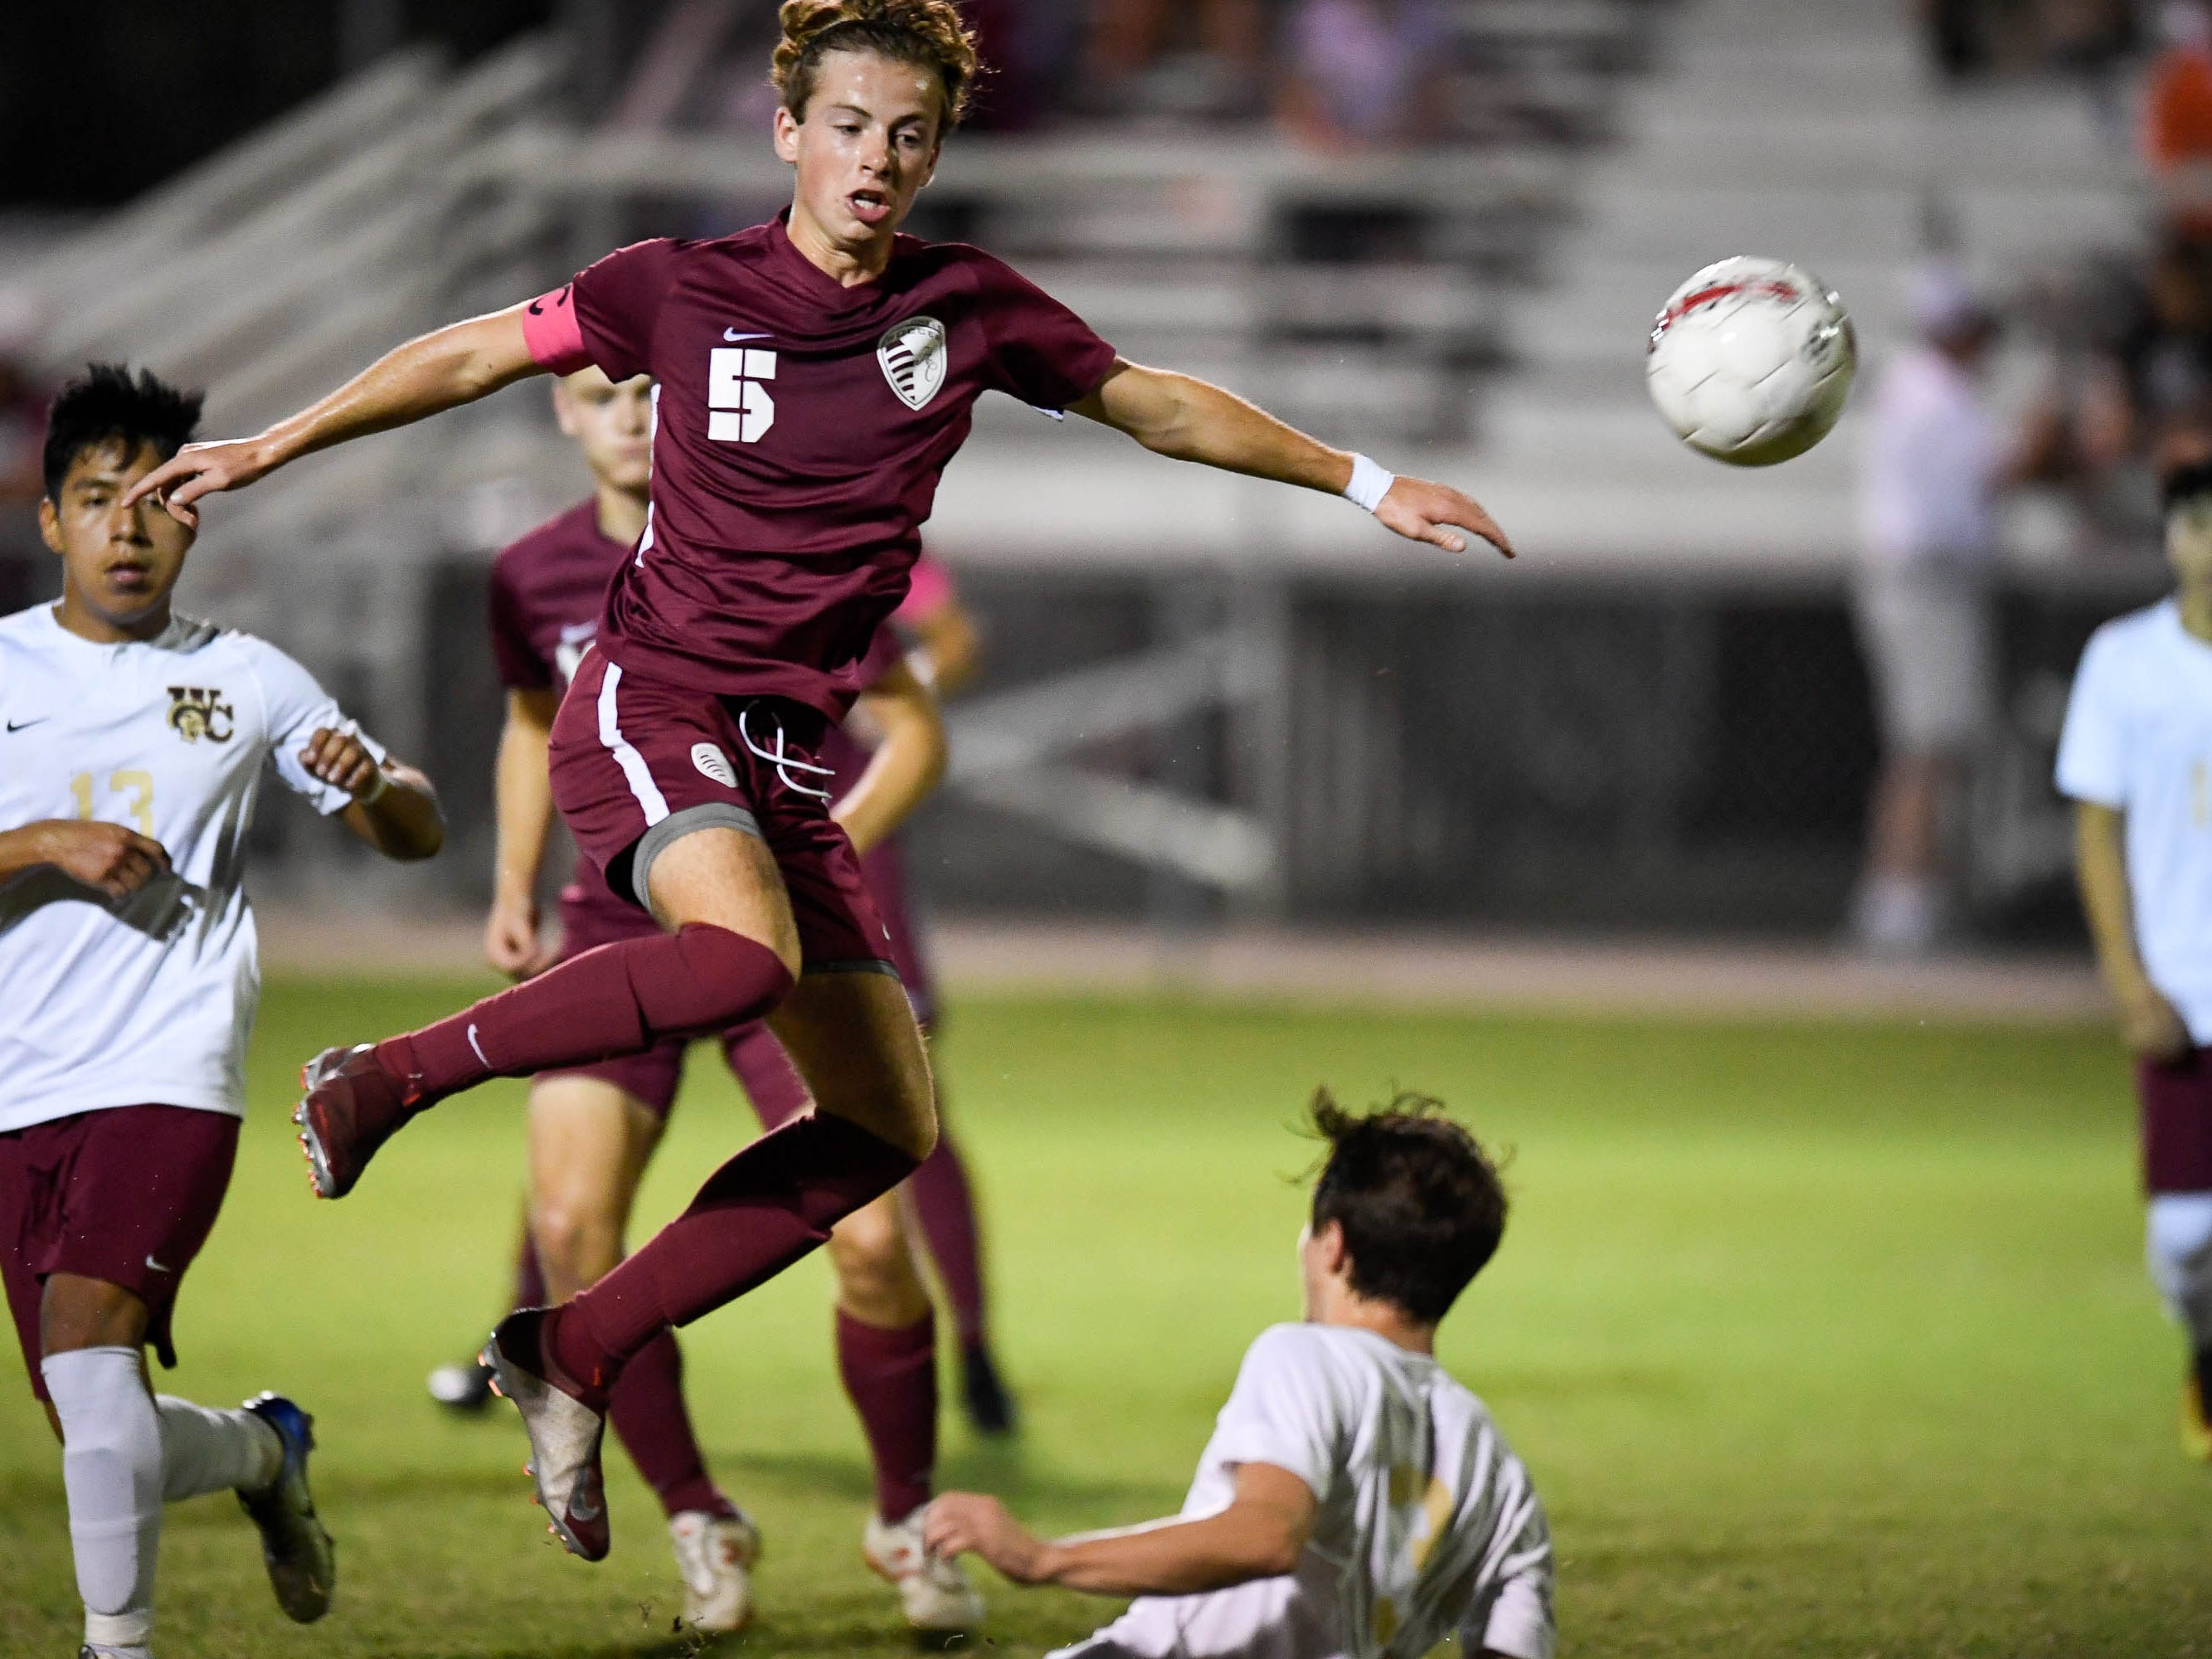 Henderson County's Cale Wright (5) with the ball following a corner kick in front of the Webster goal as the Henderson County Colonels play the Webster County Trojans in the Sixth District Soccer Tournament at Colonel Field Wednesday, October 10, 2018.